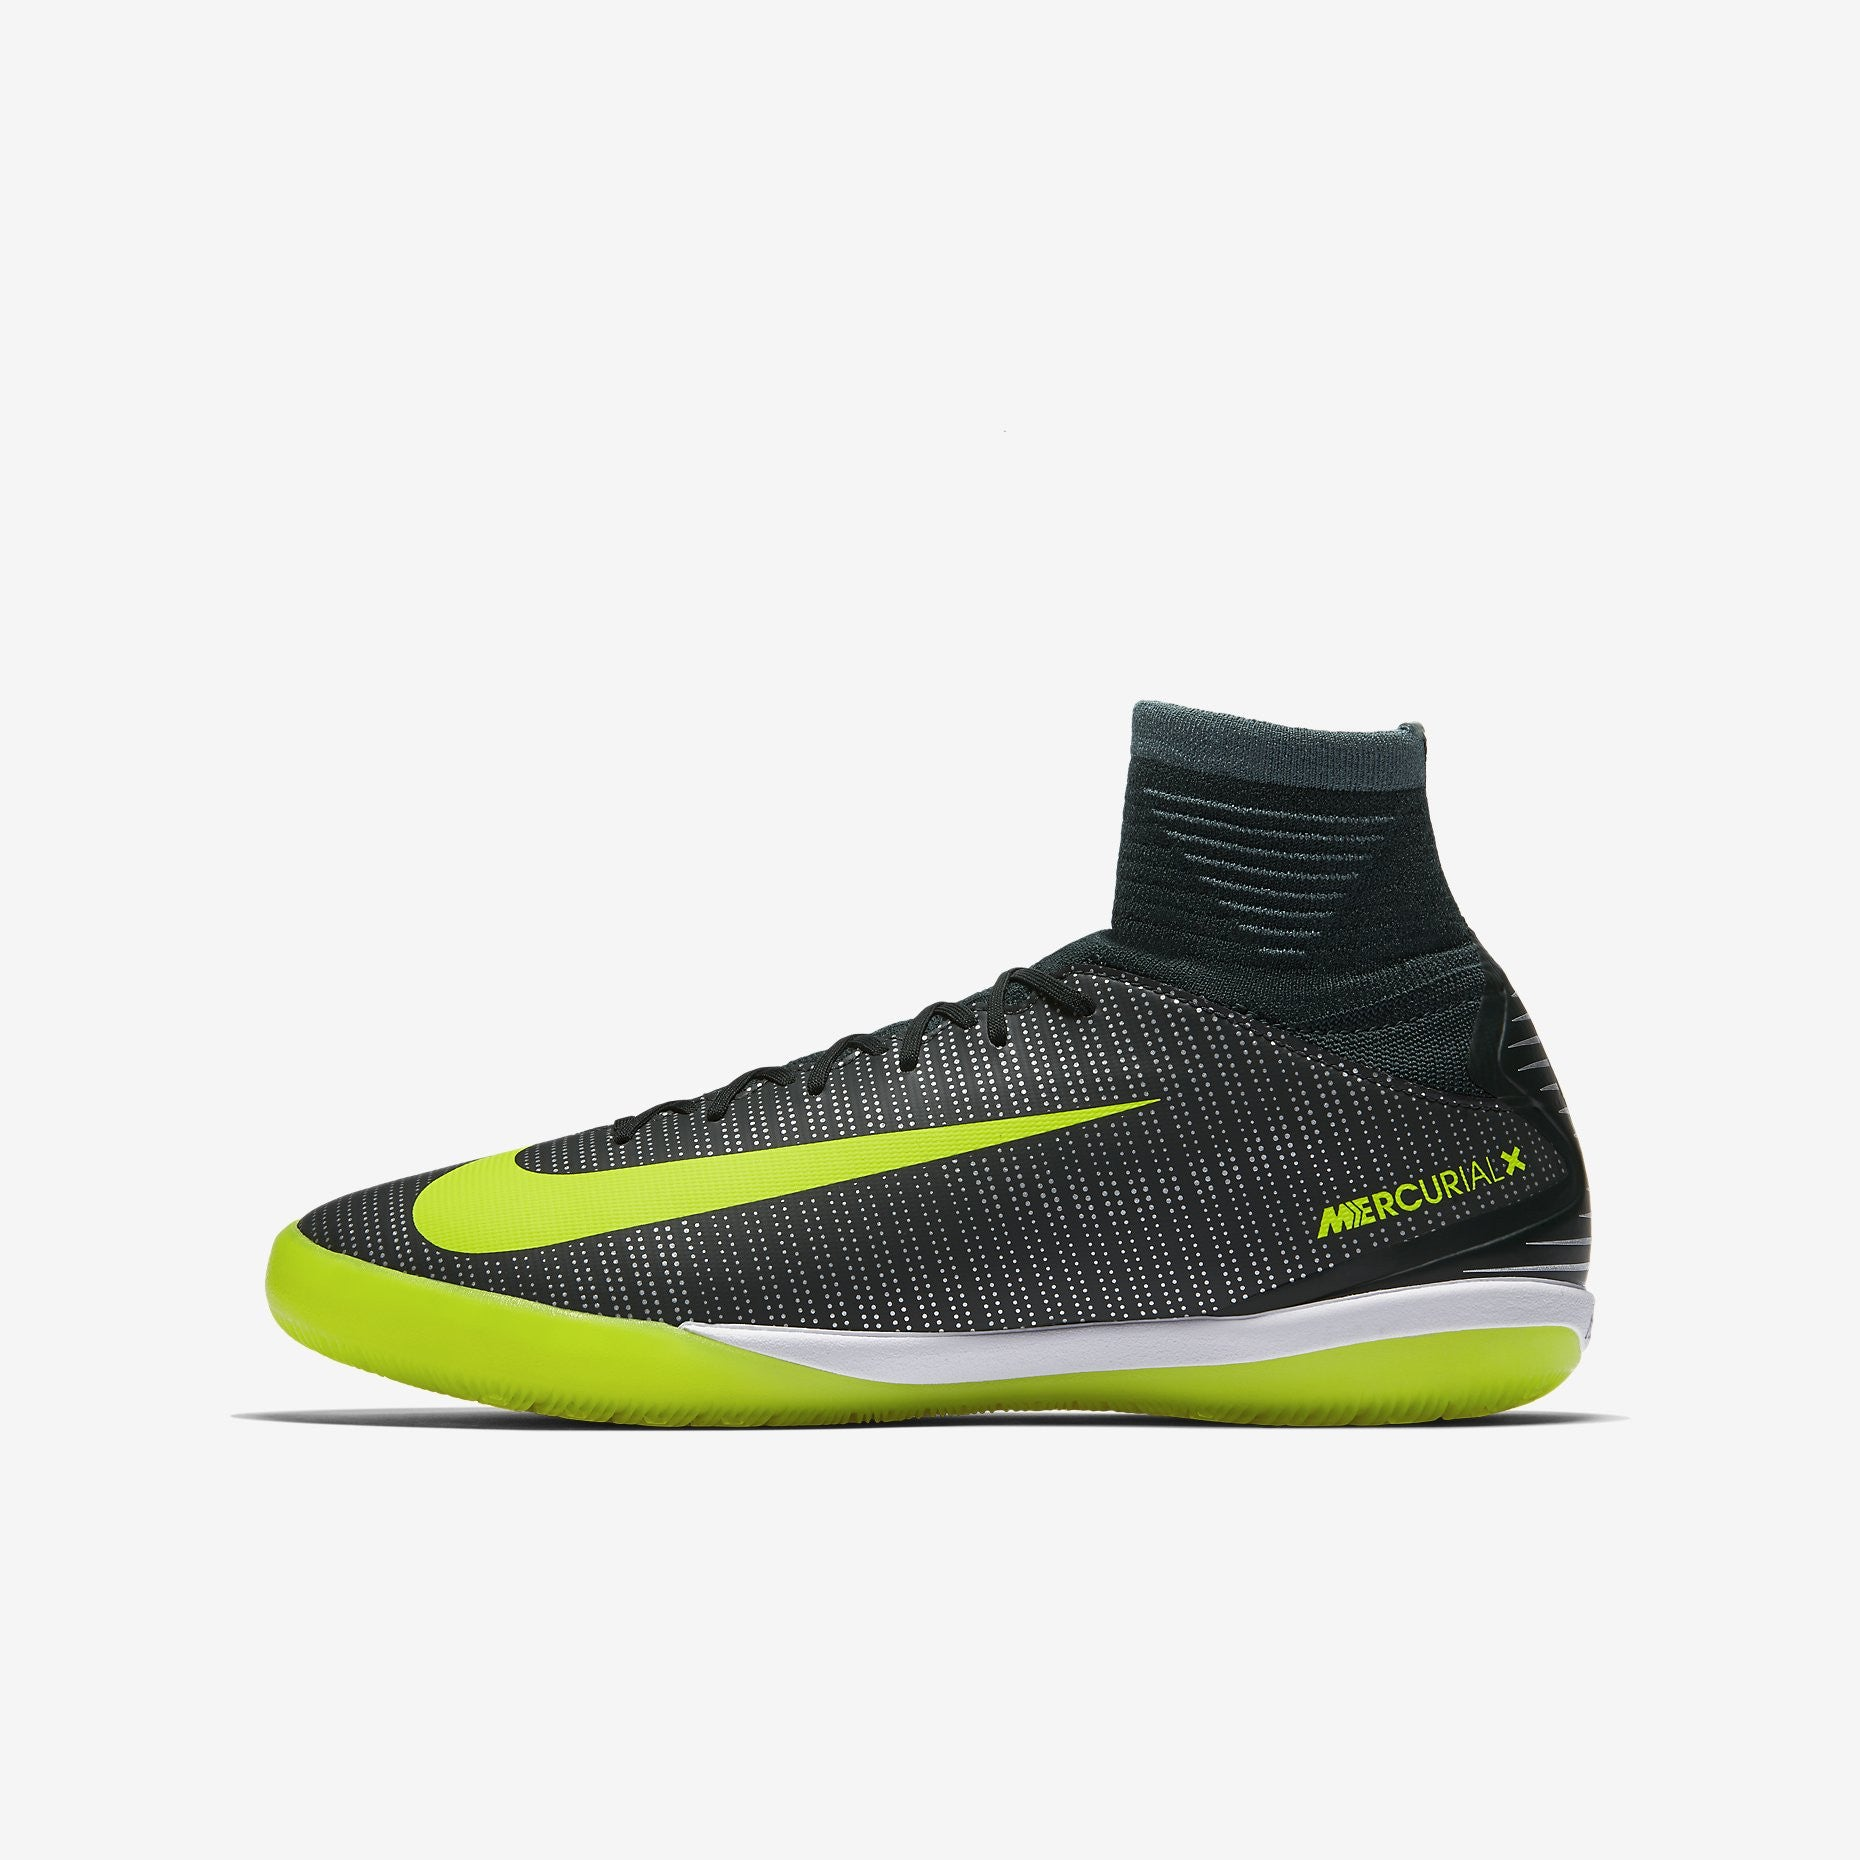 big sale official images biggest discount Nike Junior MercurialX Proximo II CR7 IC